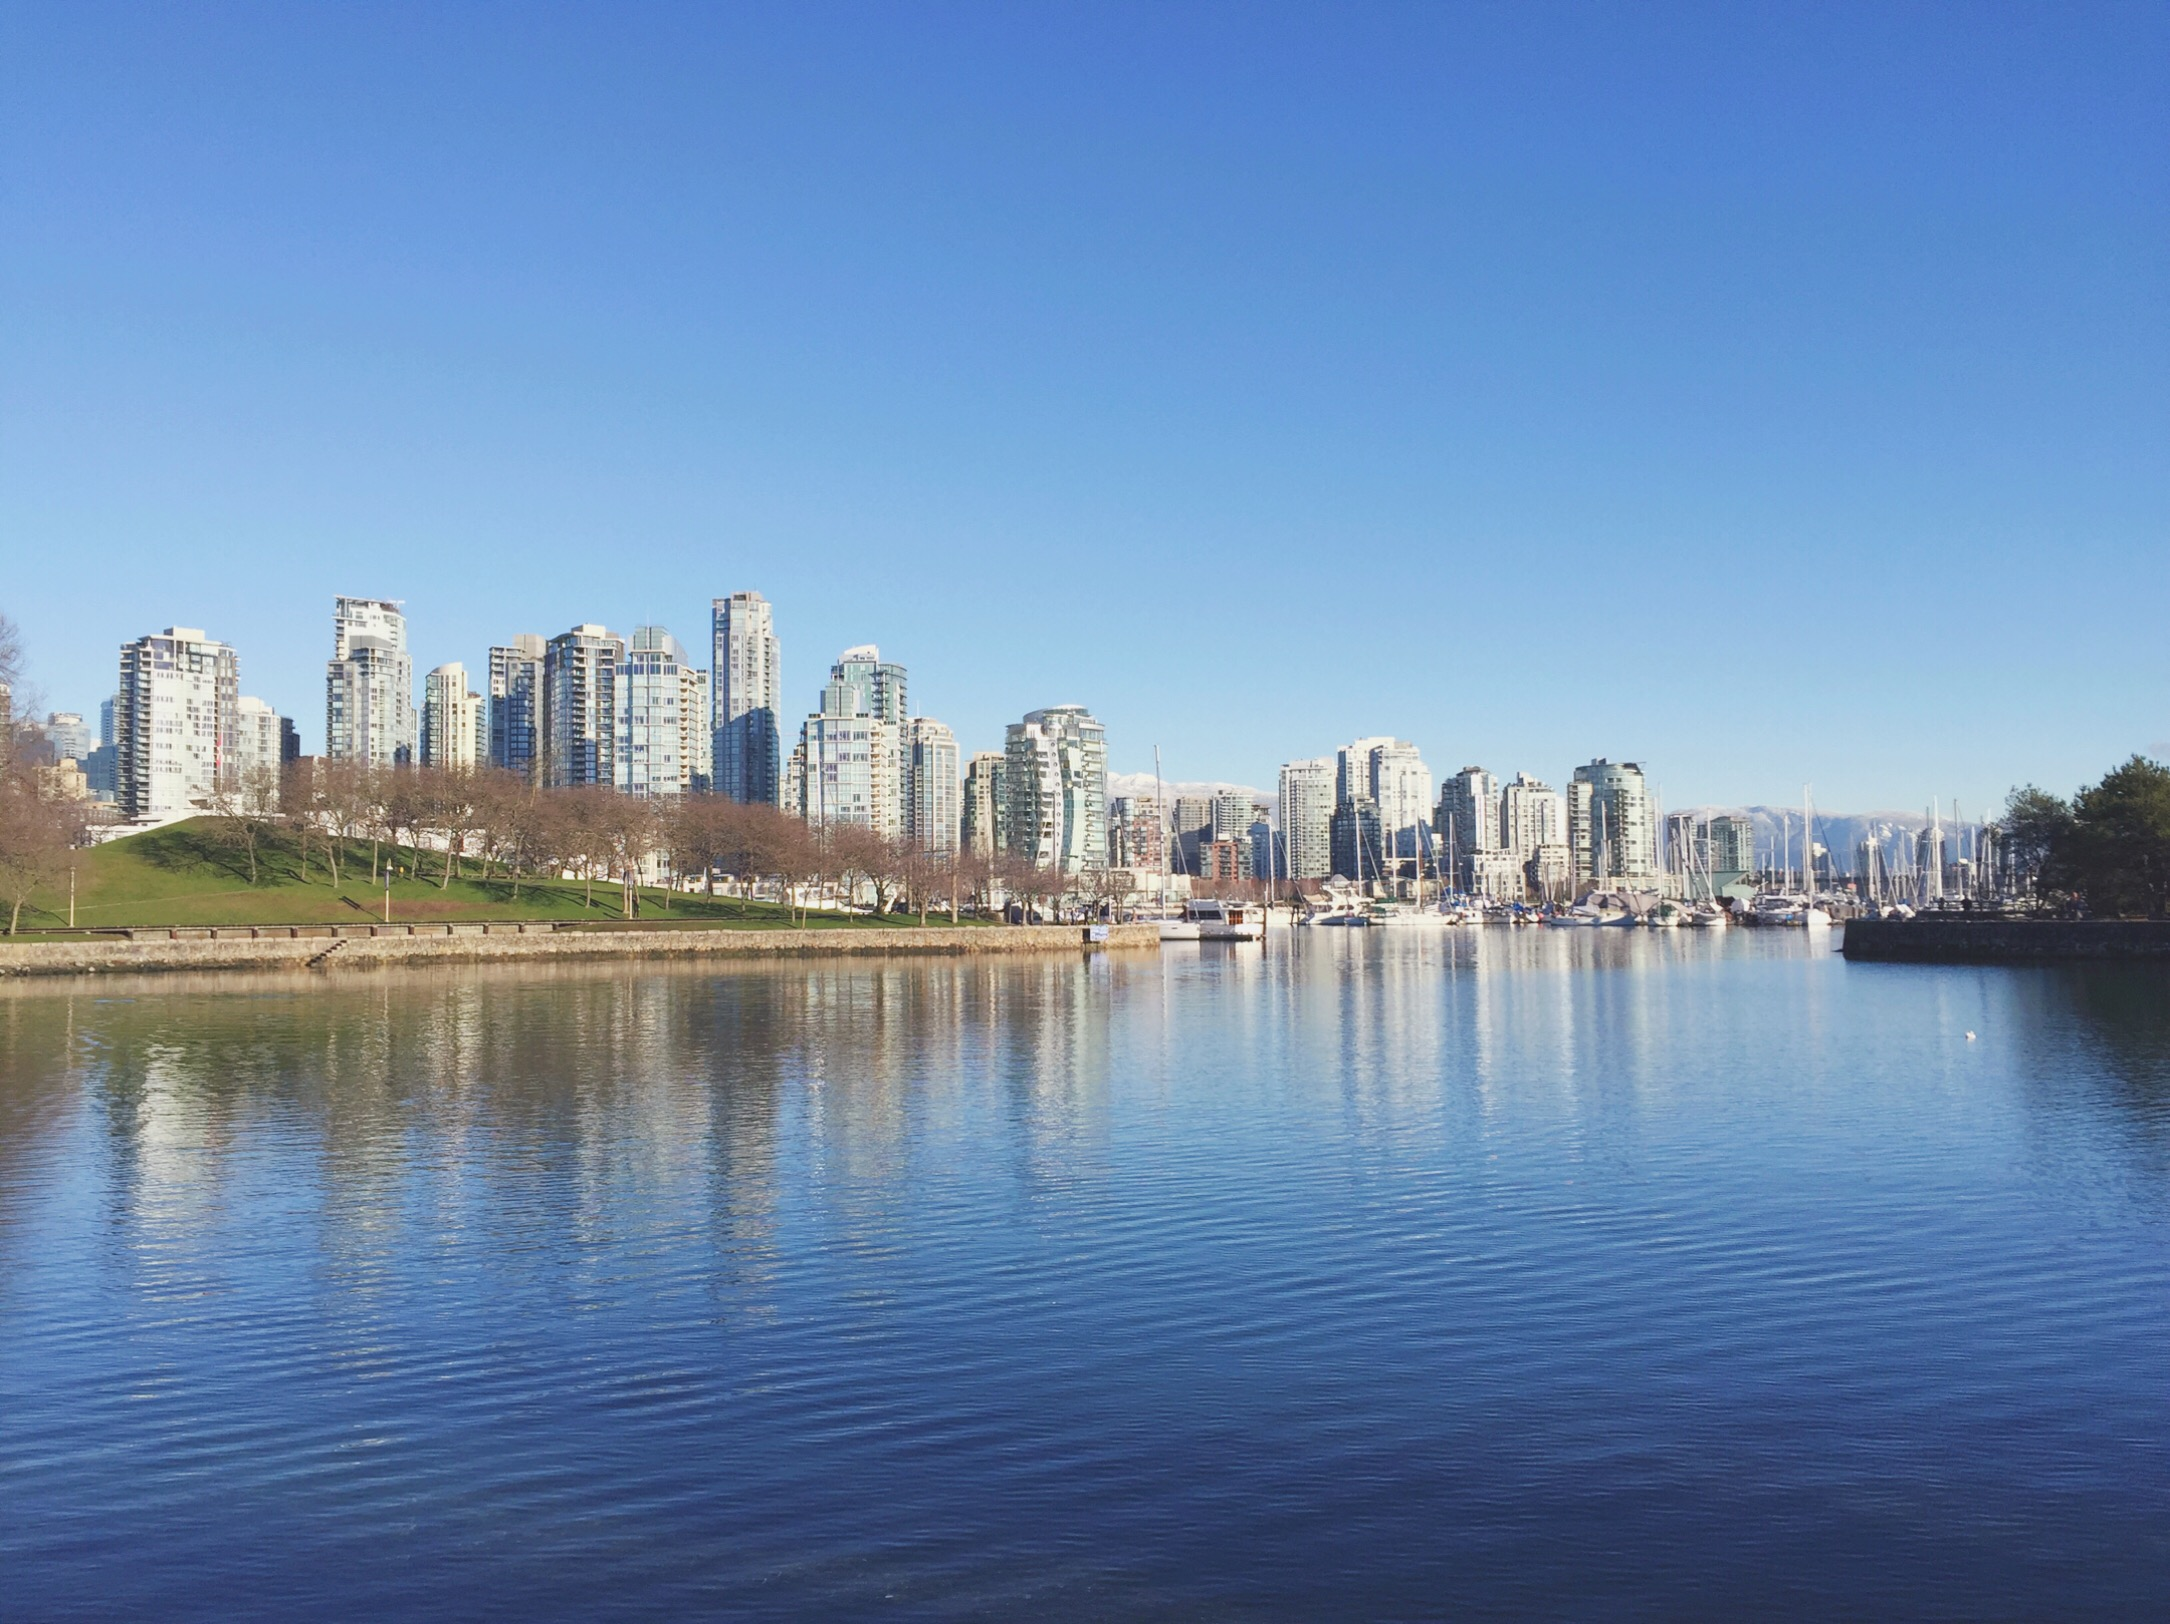 How can I move to Canada?